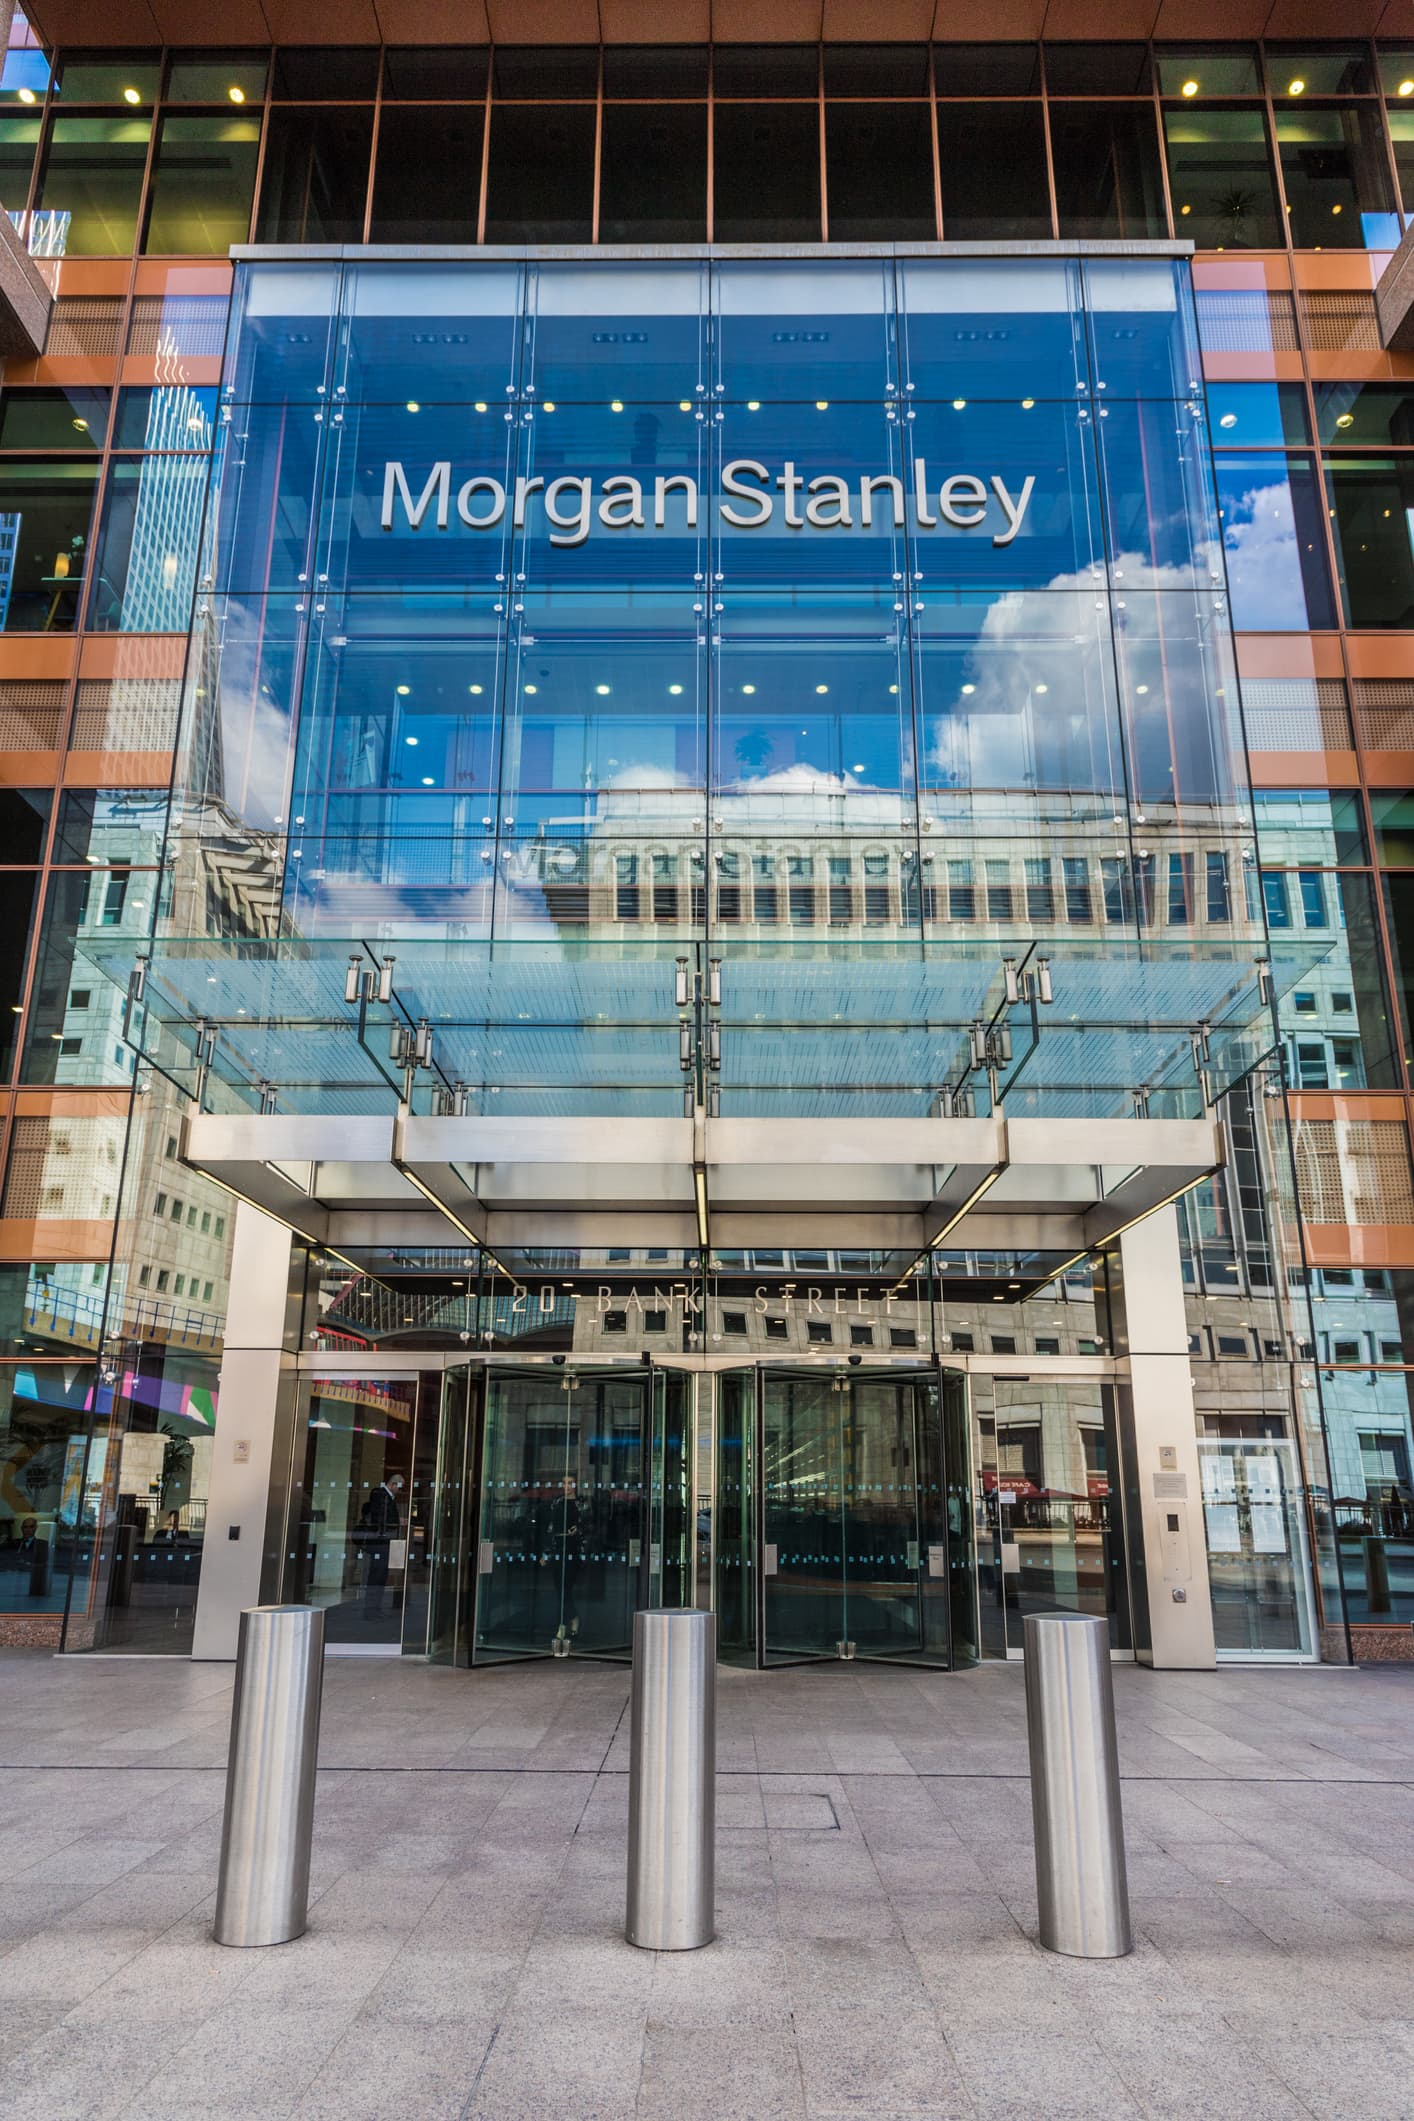 Morgan Stanley will bar workers without Covid vaccinations from most New York offices beginning July 12